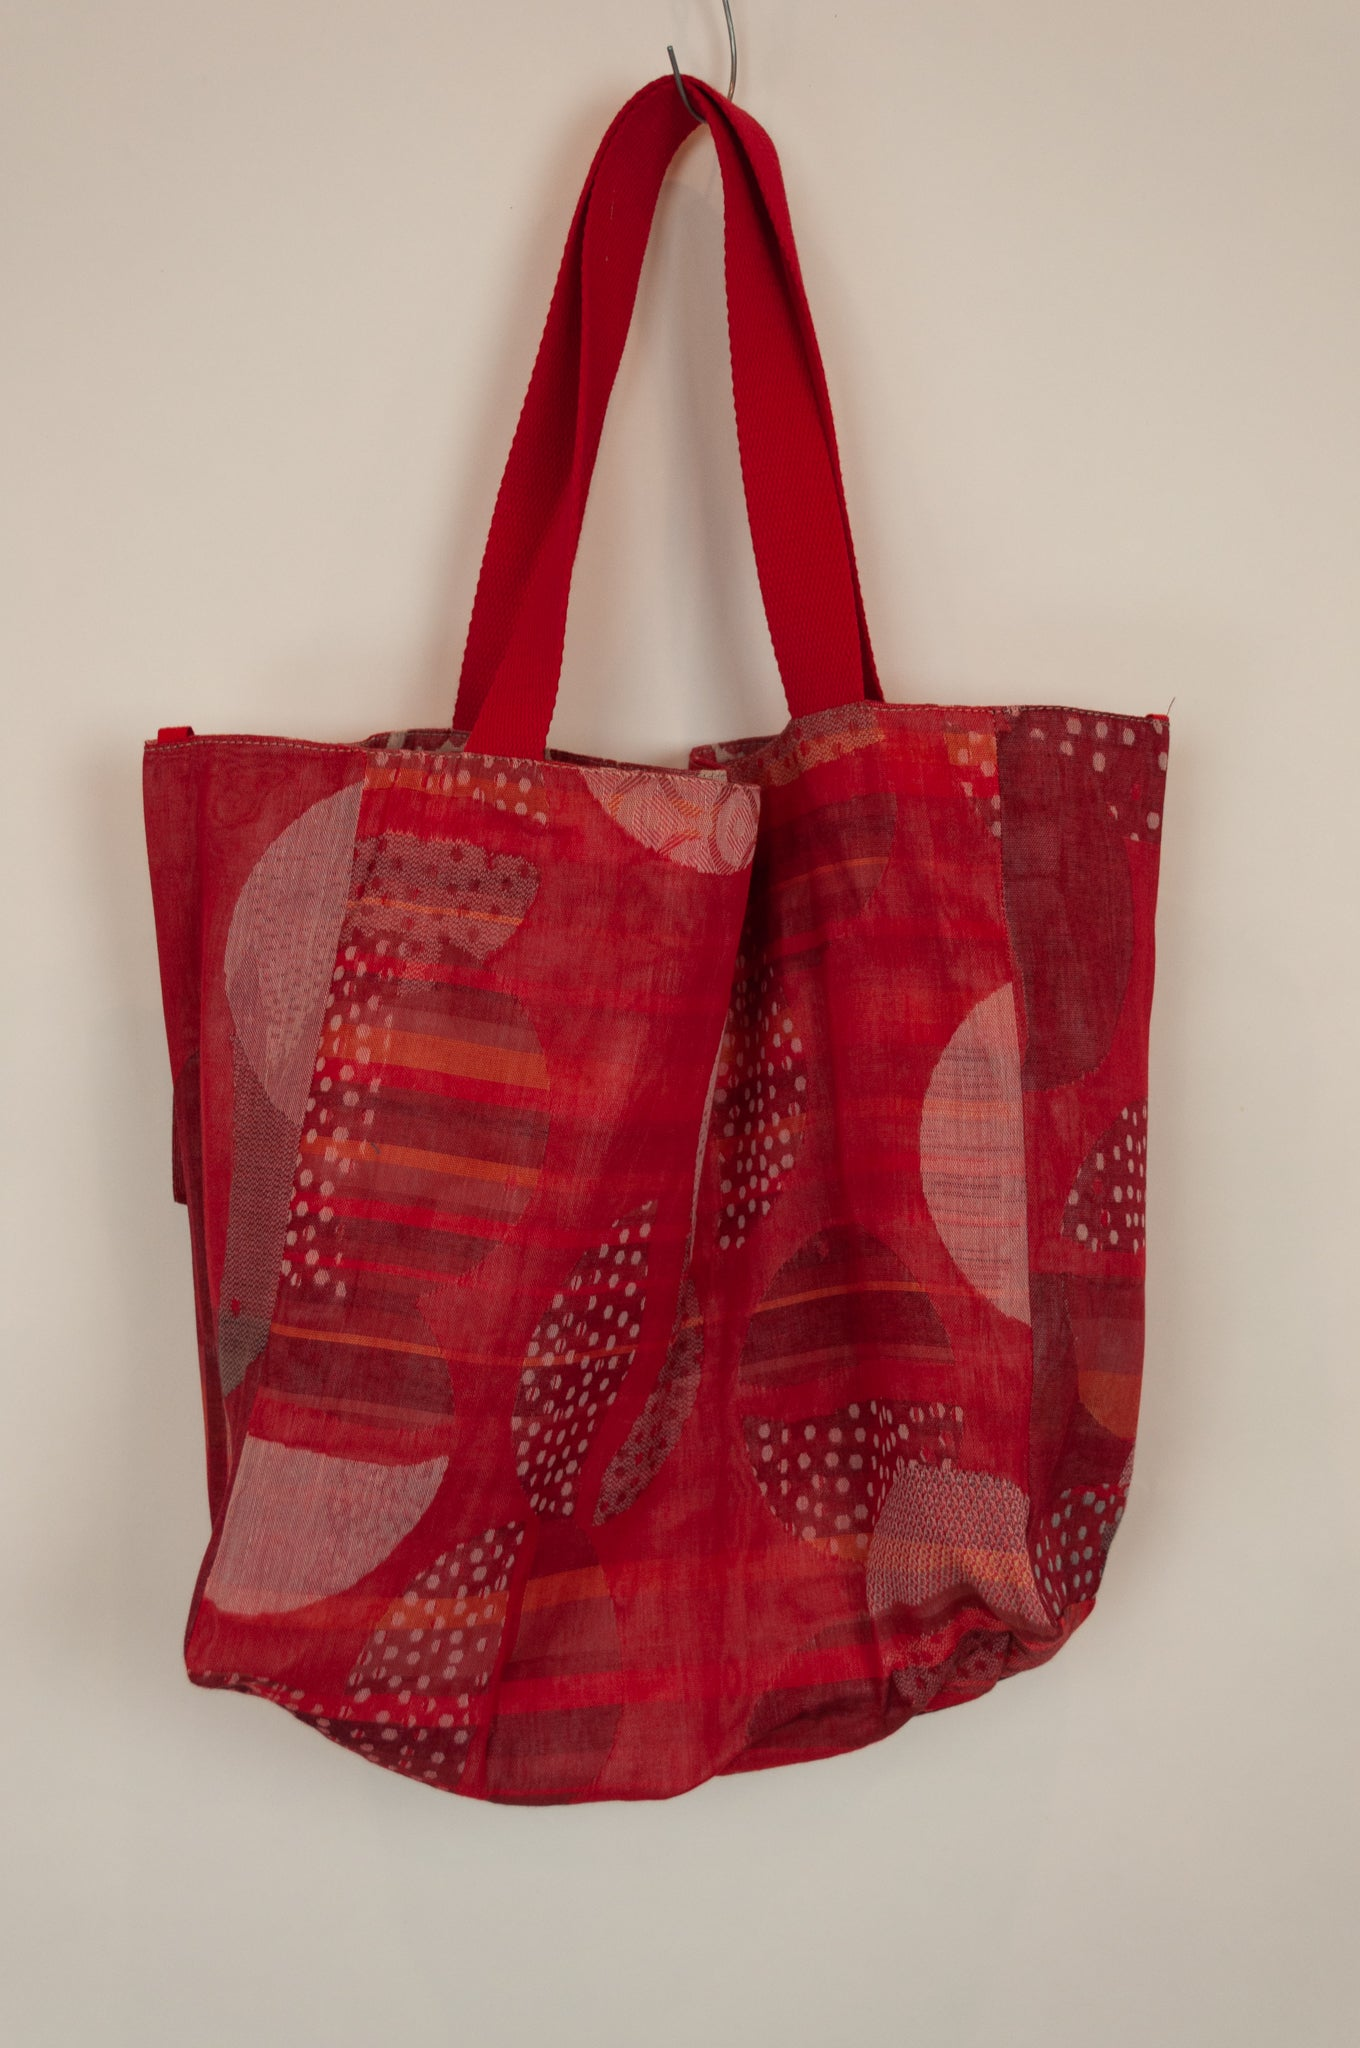 Létol bag - Coral and red (medium)